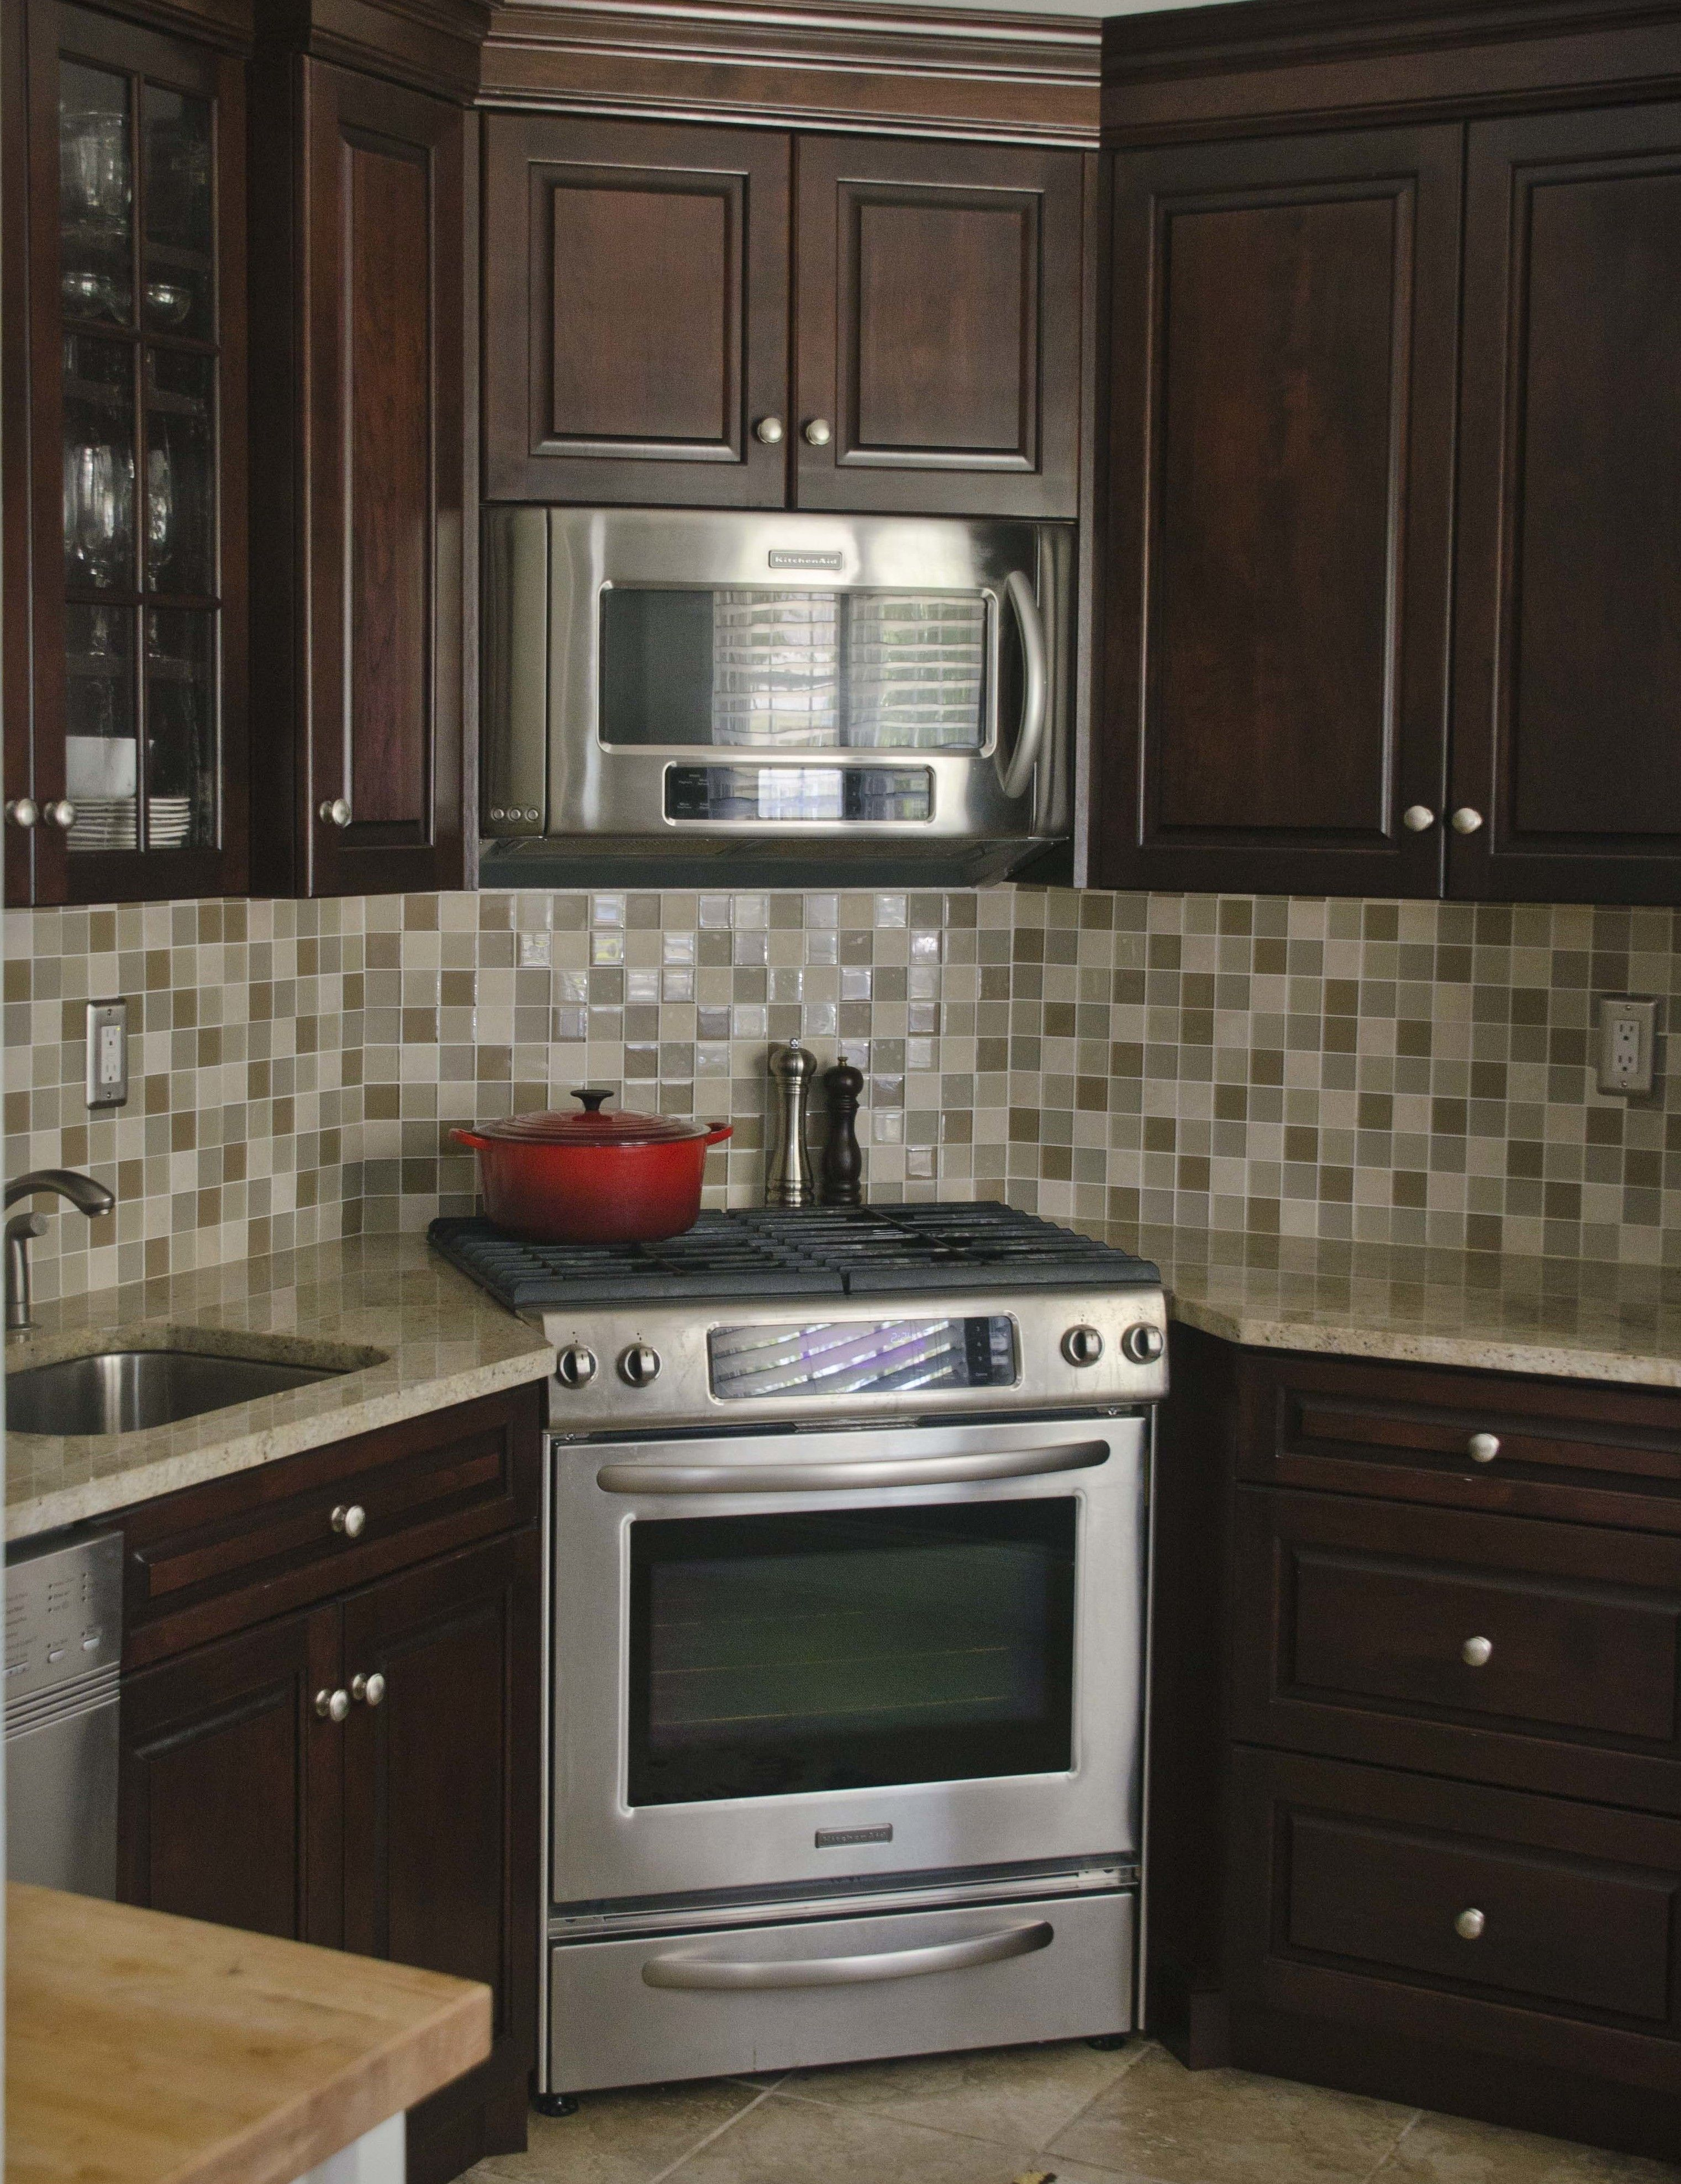 Kitchen cabinets corner oven - Corner Stove Kitchen The Corner Stove Kitchen Is A Perfect Example Of Small Kitchen Design